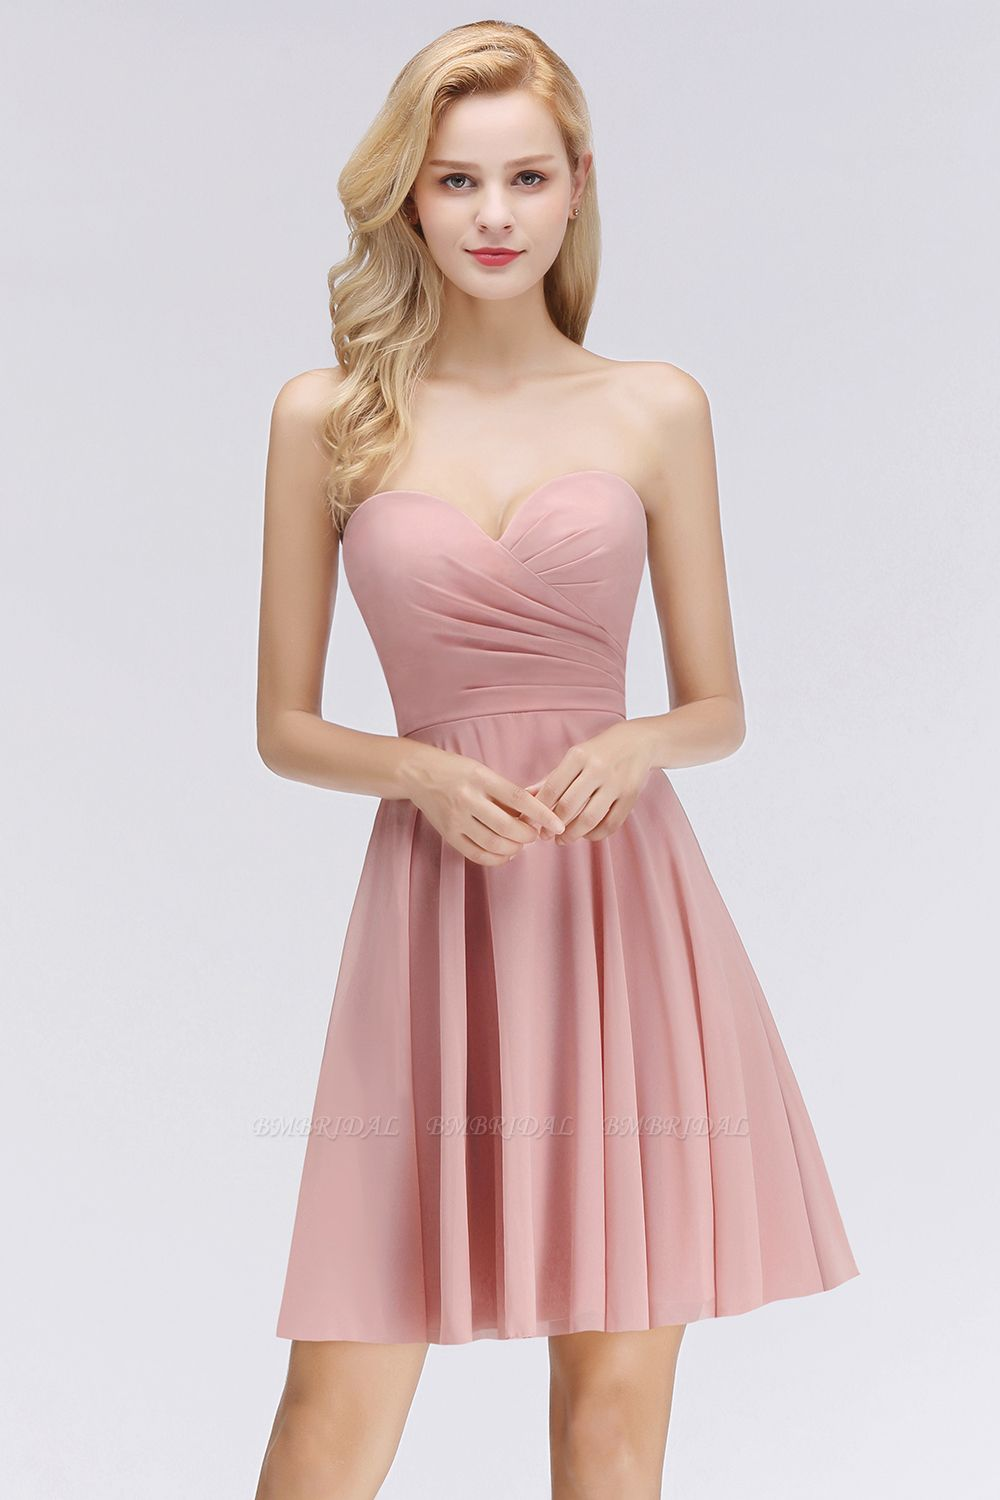 Lovely Sweetheart ruffle Pink Chiffon Short Bridesmaid Dresses Affordable